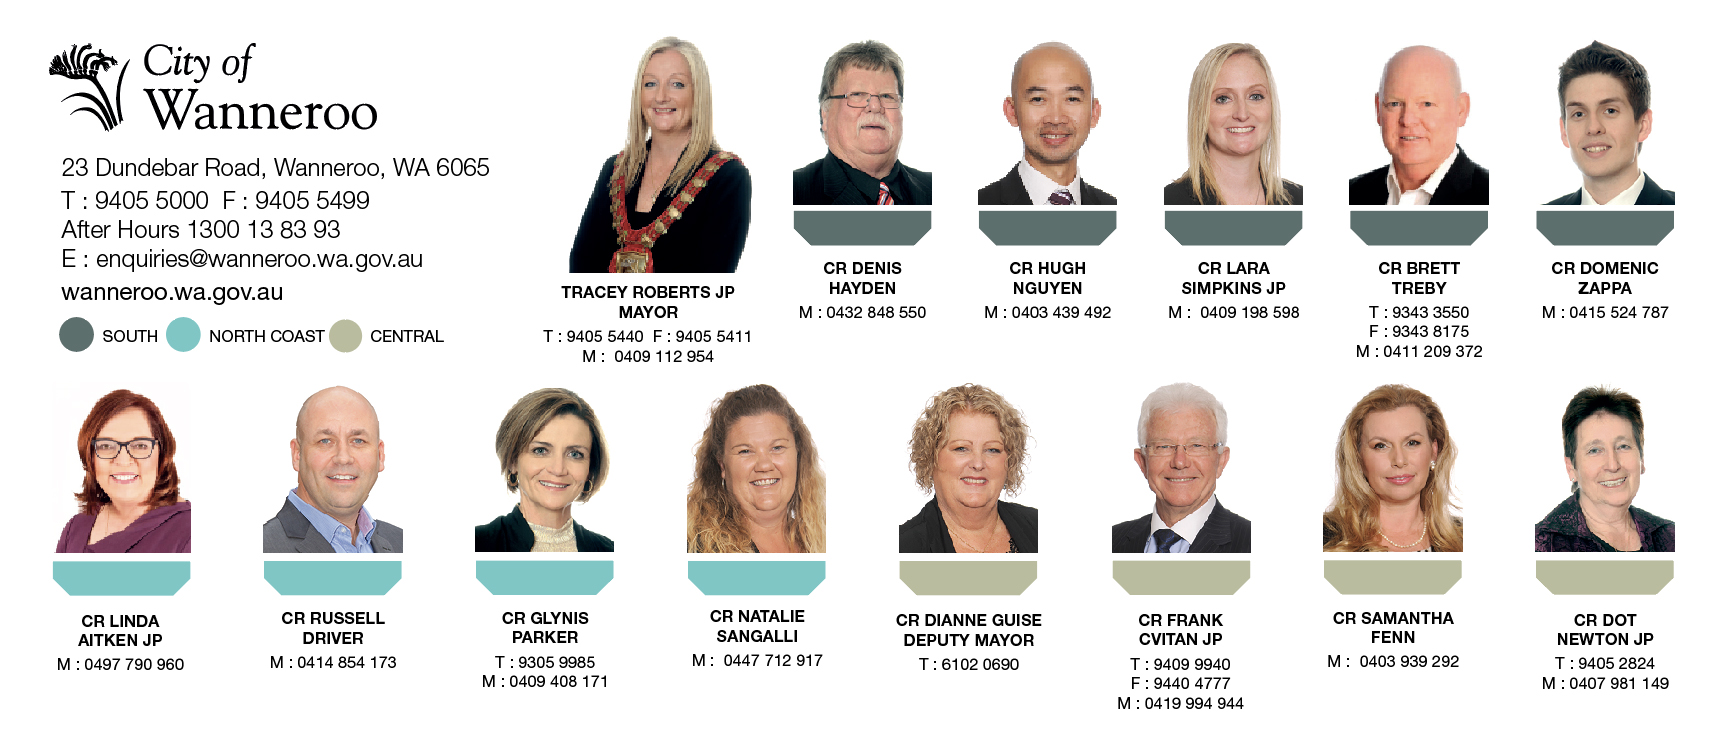 Councillor Details June 2017